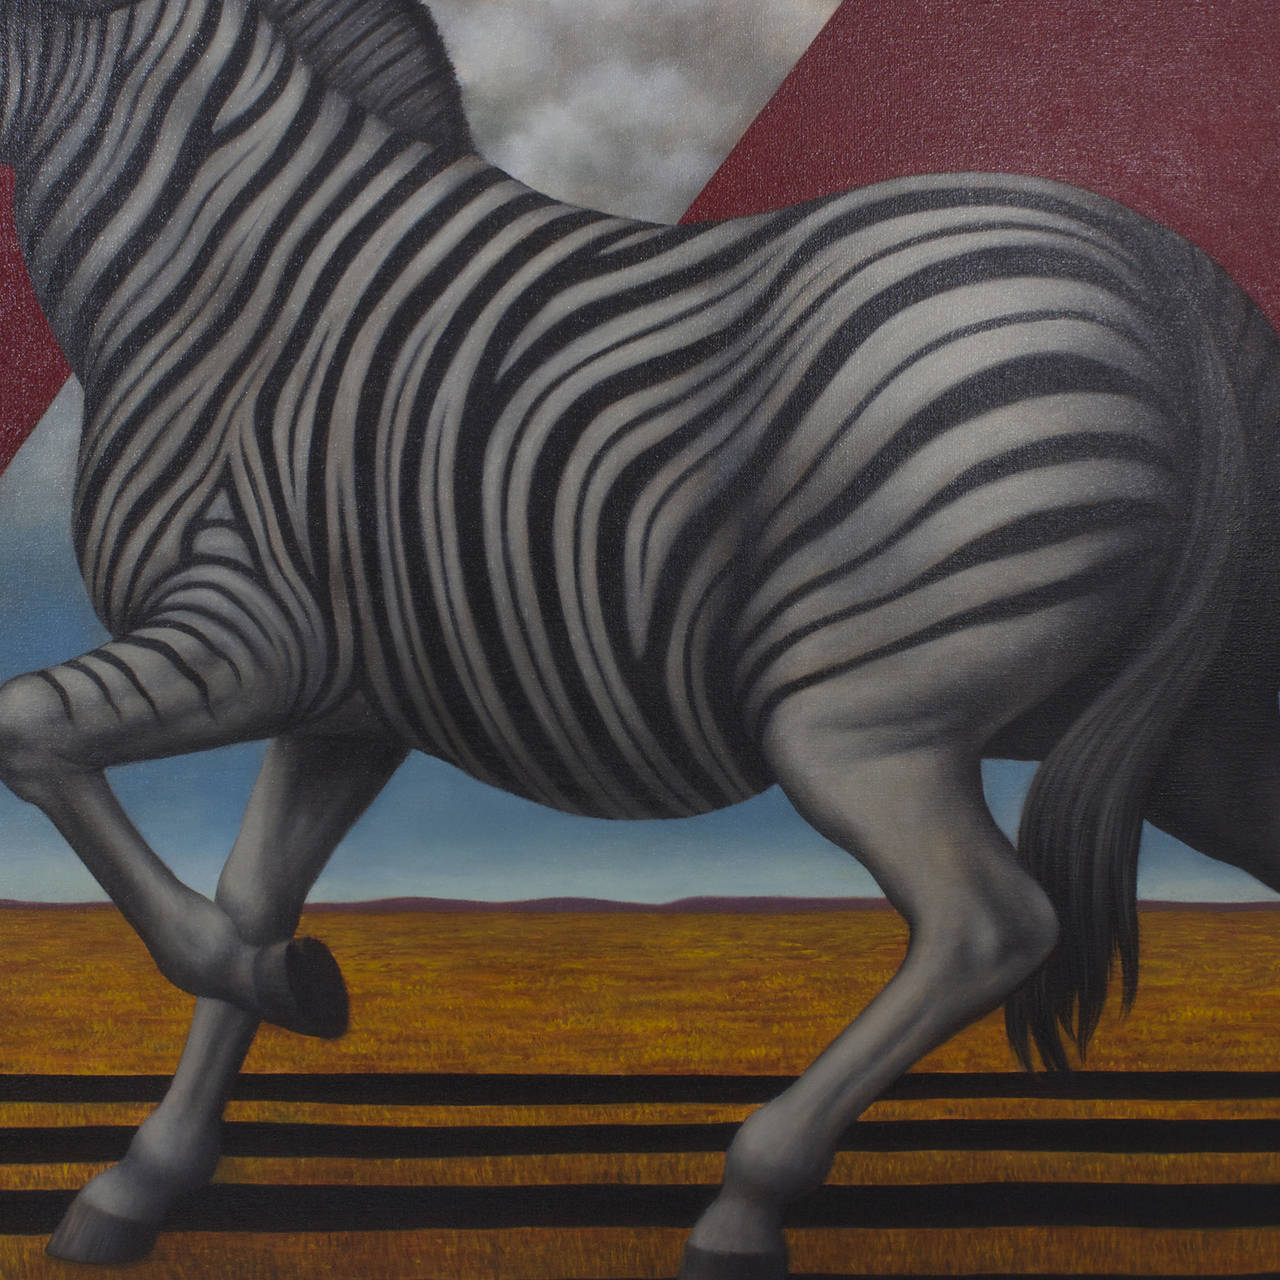 American Acrylic Zebra Painting on Canvas For Sale